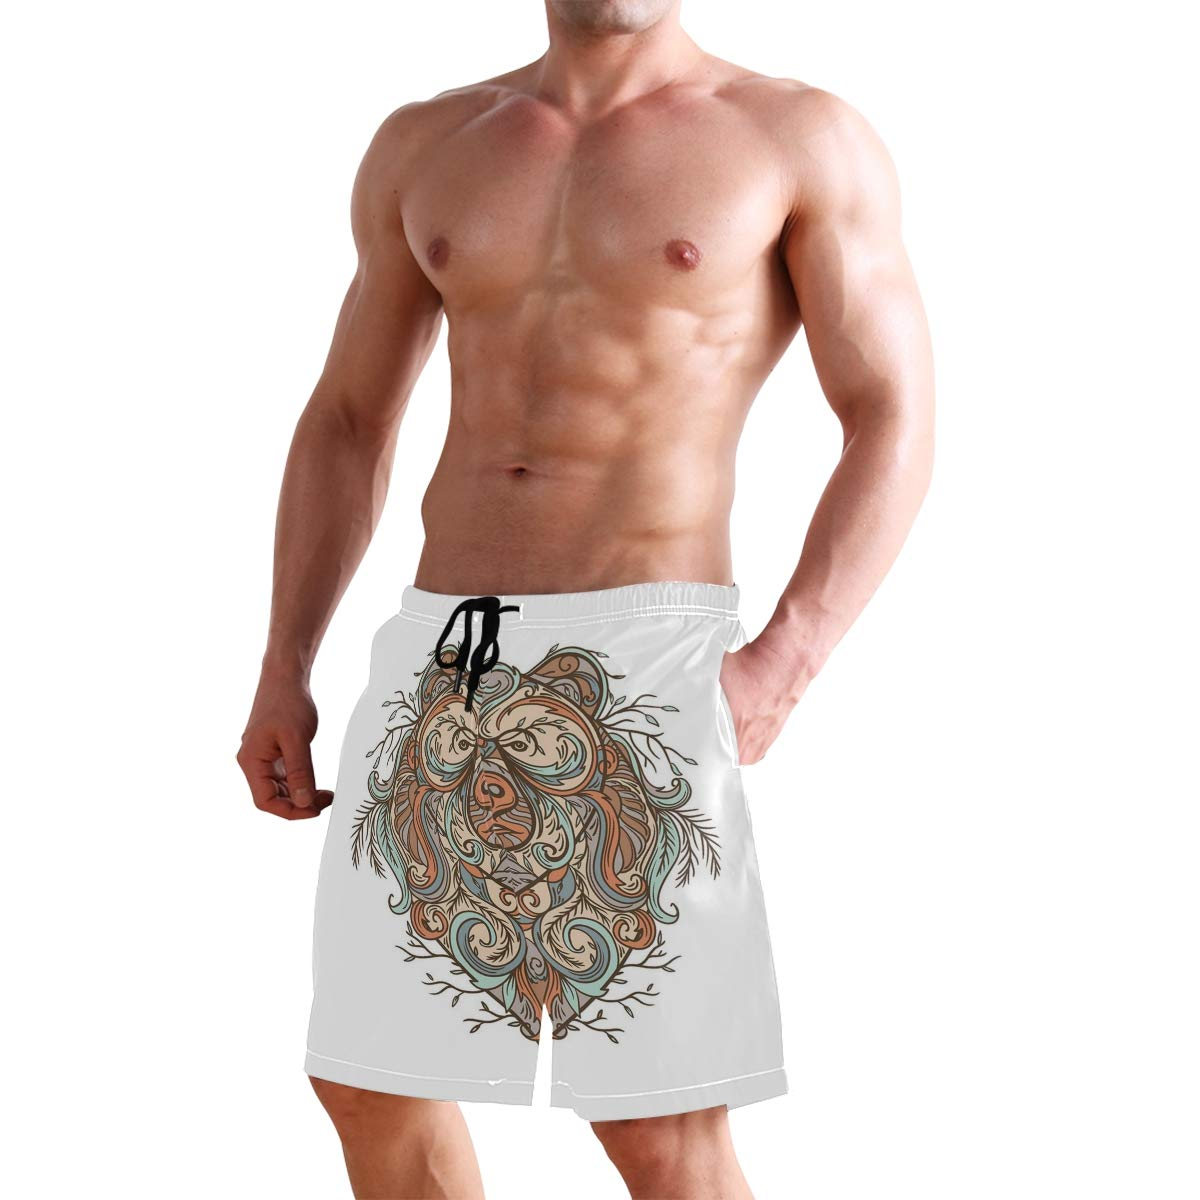 COVASA Mens Summer ShortsHighly Detailed Bear Figure with Abstract Floral Orna